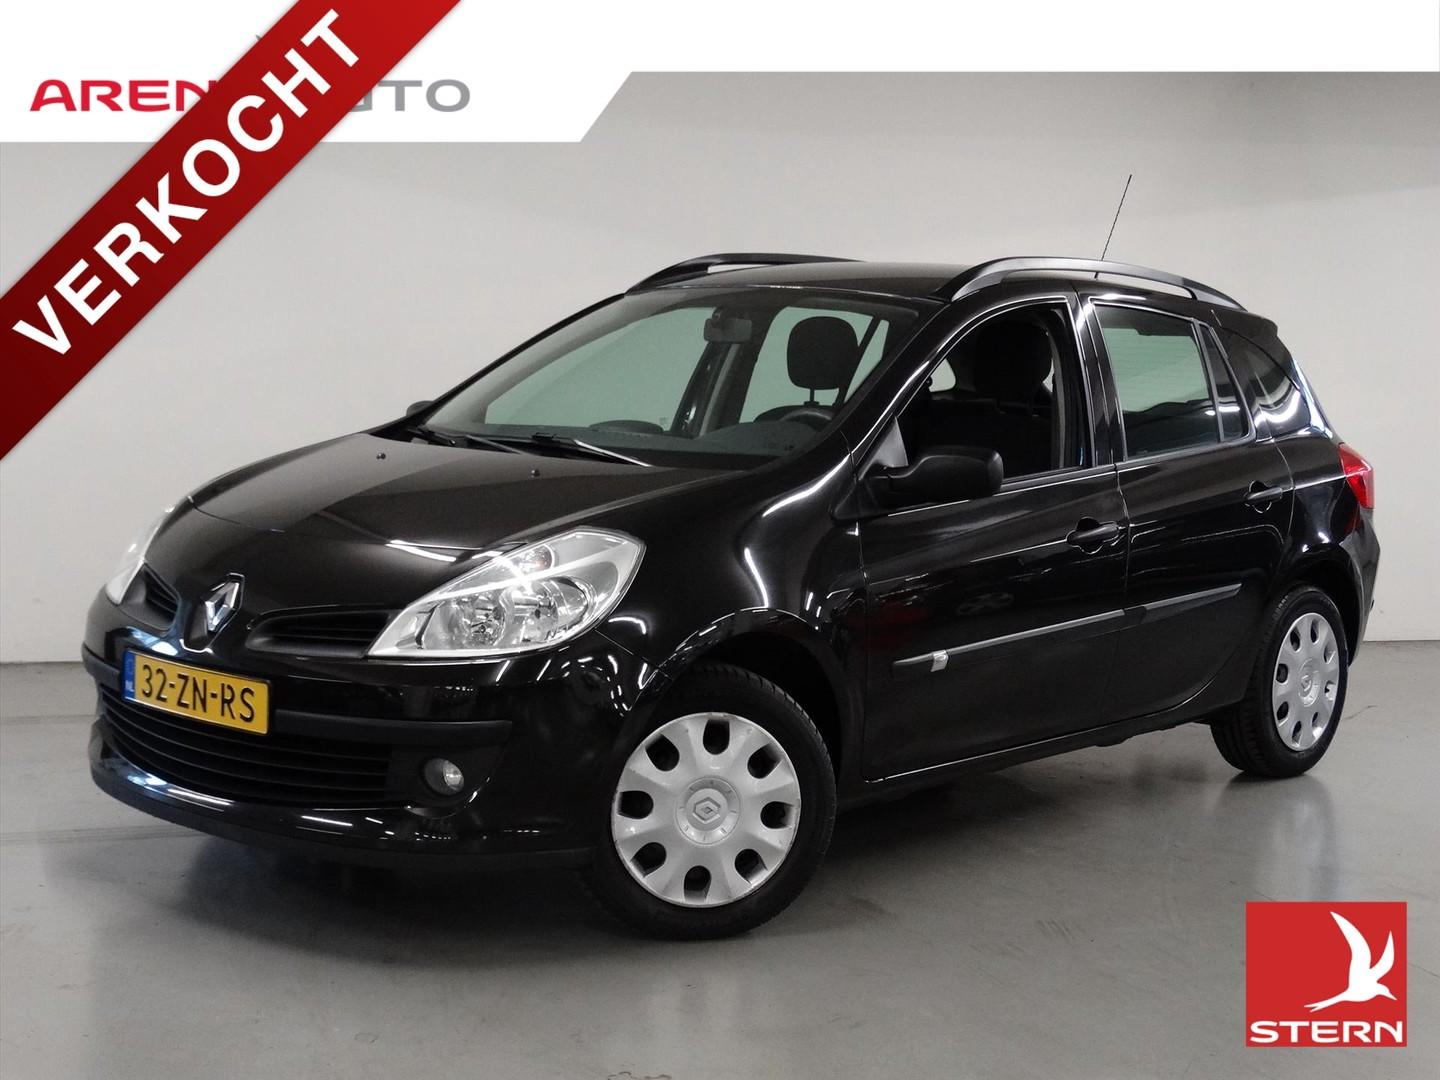 Renault Clio Estate 1.2 tce 100 corporate edition